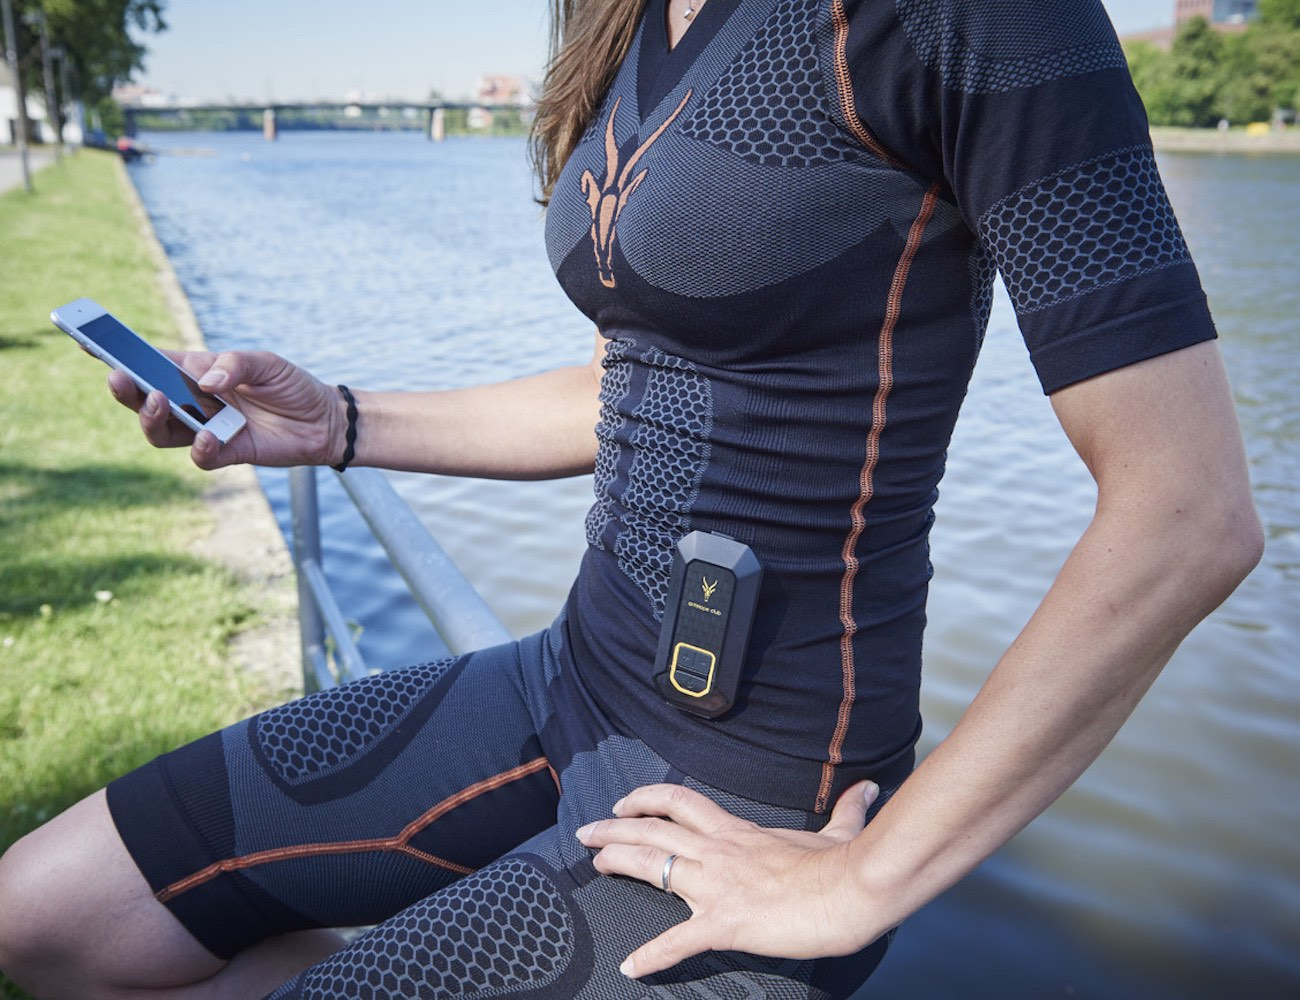 ANTELOPE+Sportswear+%E2%80%93+Muscle+Activating+Smartsuit